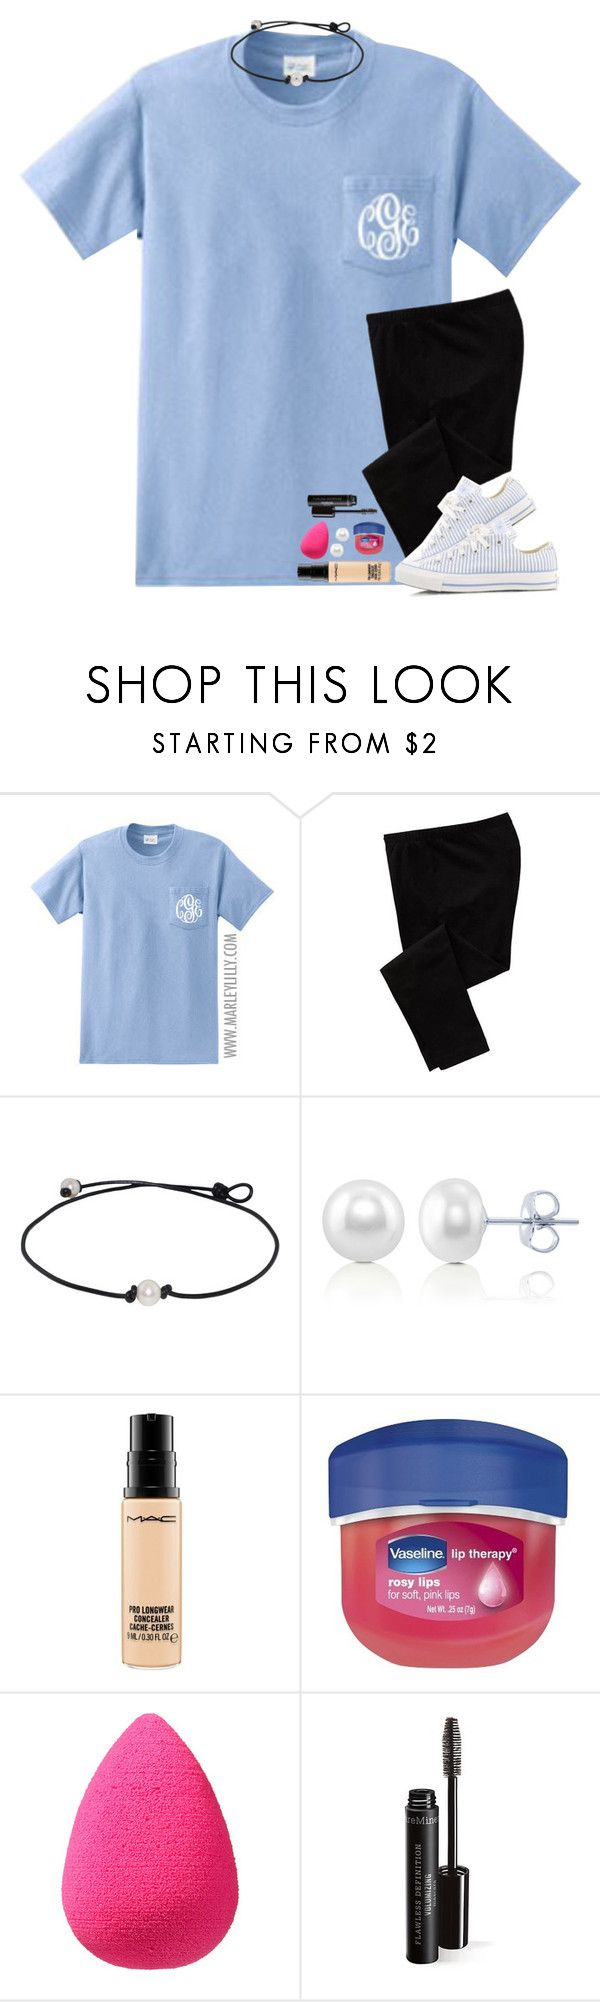 """""""I really don't like school."""" by bloom17 ❤ liked on Polyvore featuring Old Navy, Converse, BERRICLE, MAC Cosmetics, Therapy and beautyblender"""